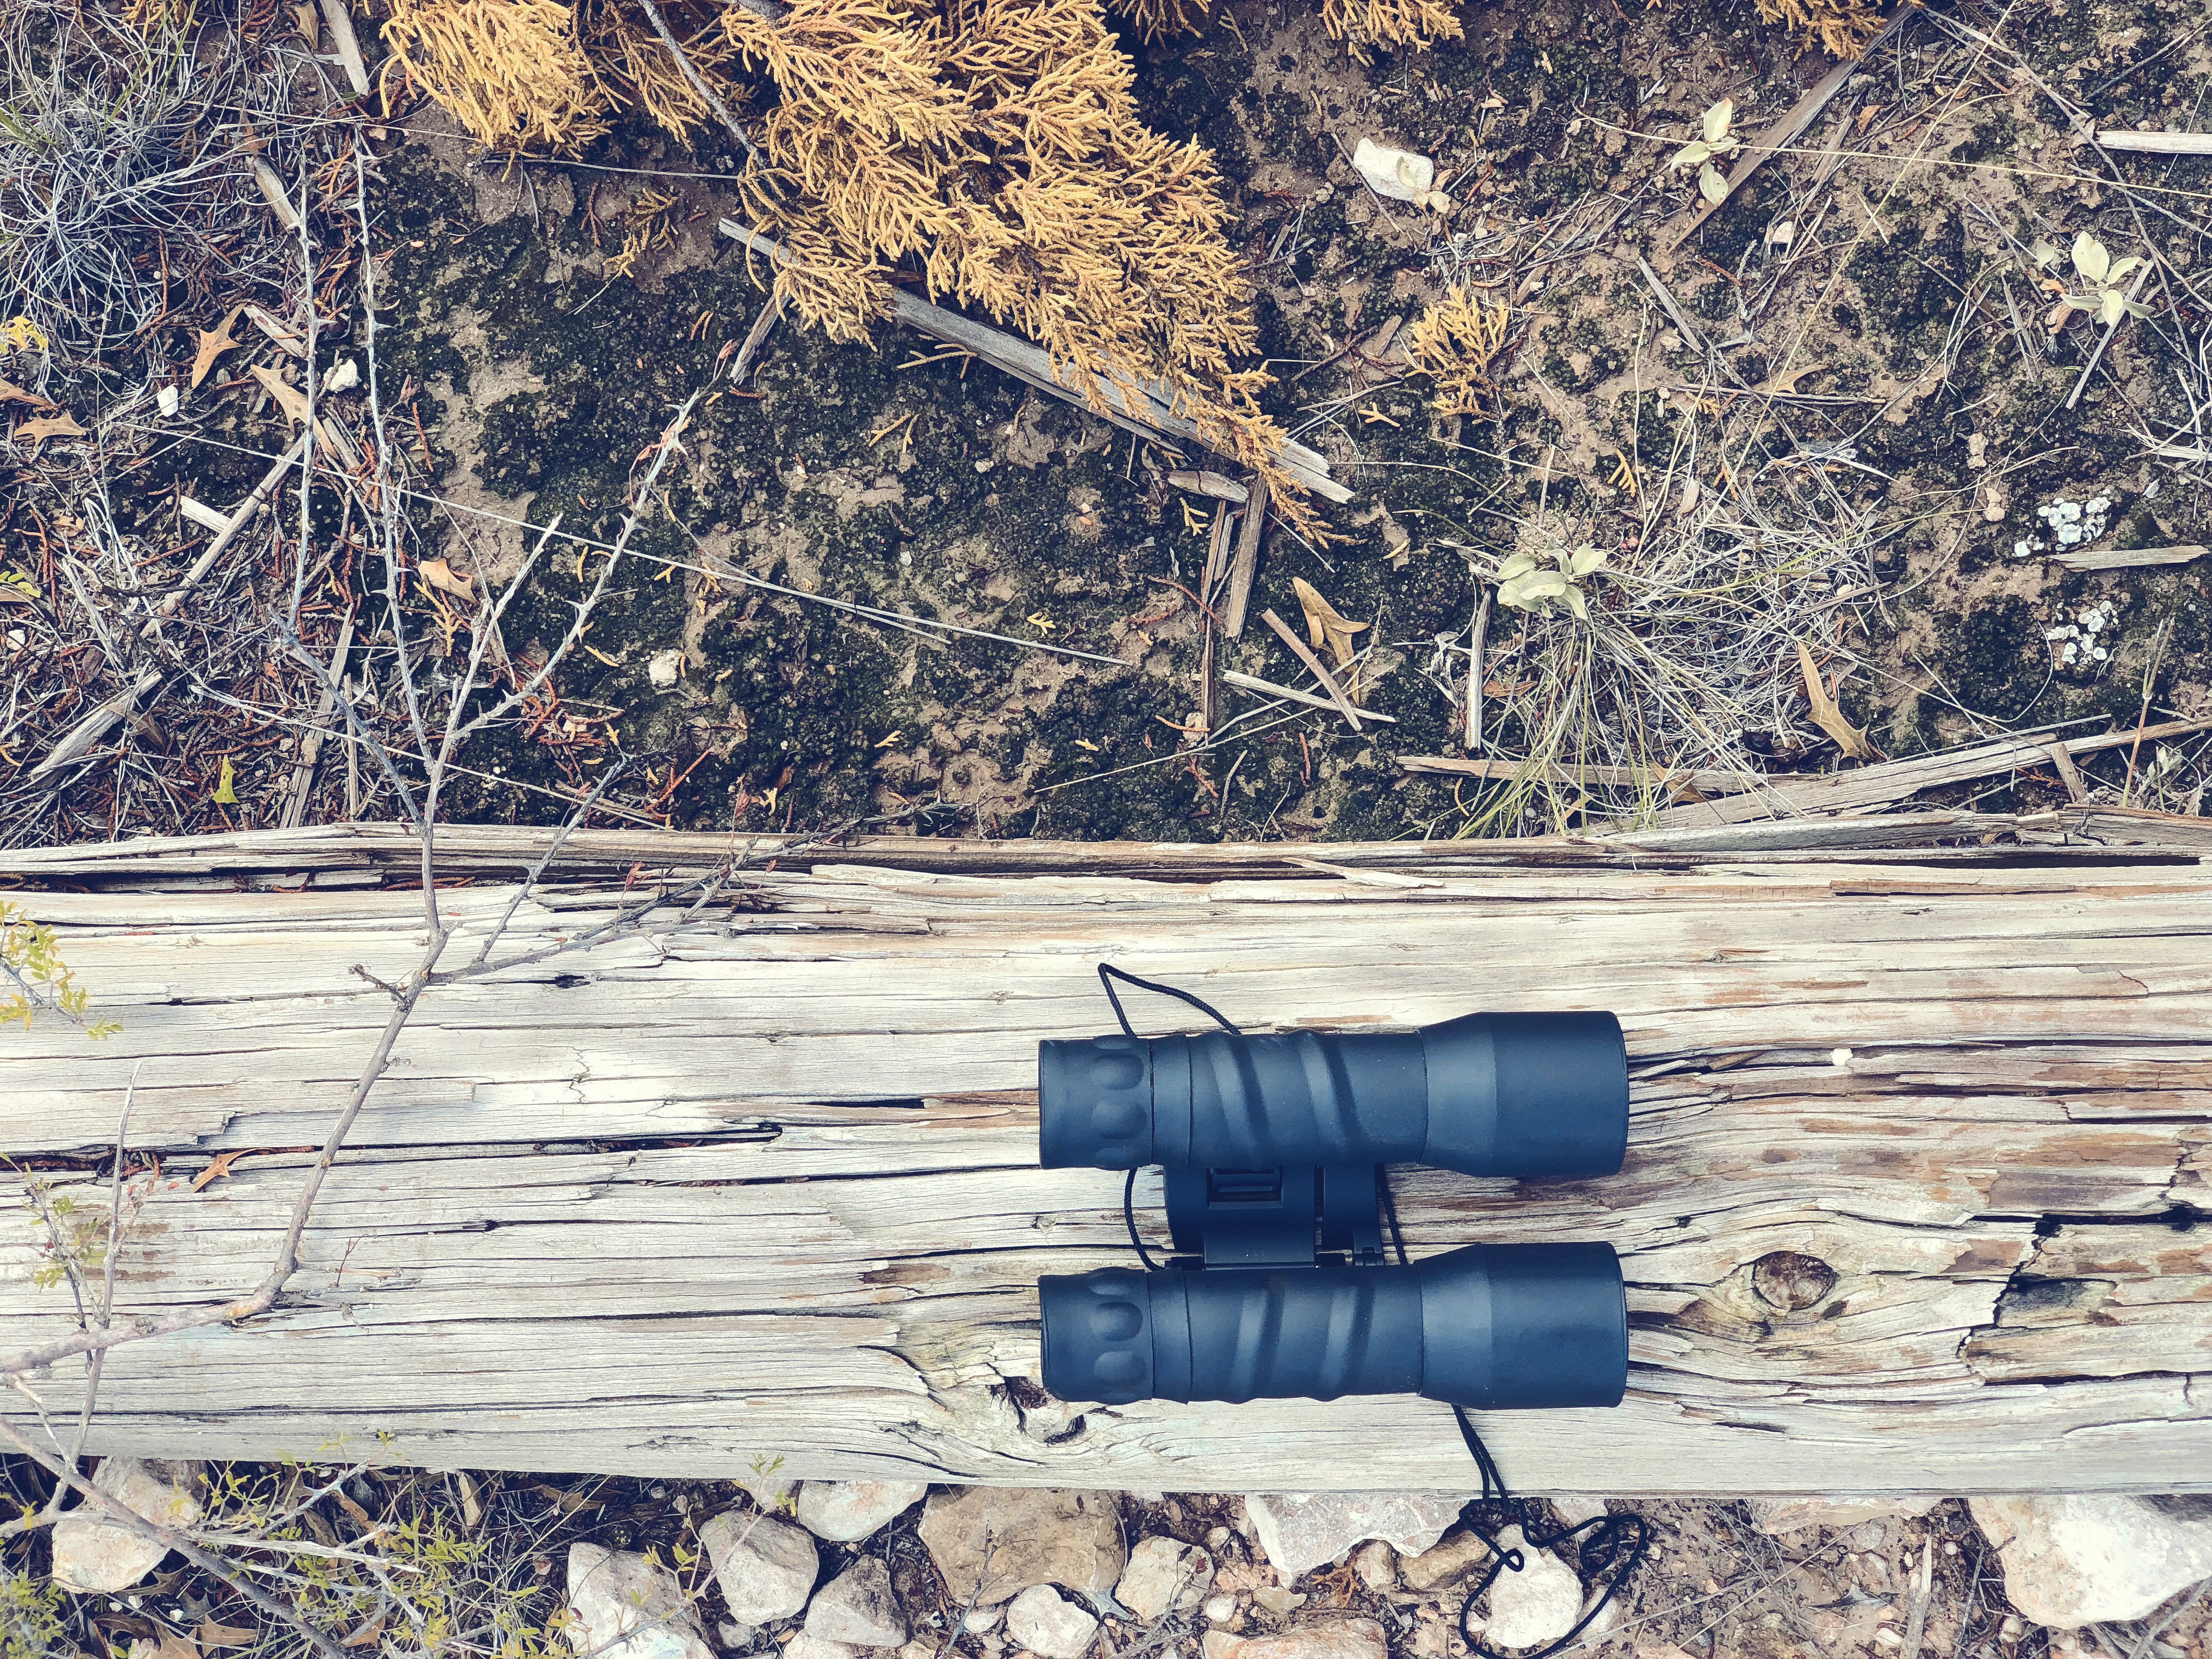 black binoculars on brown wood log